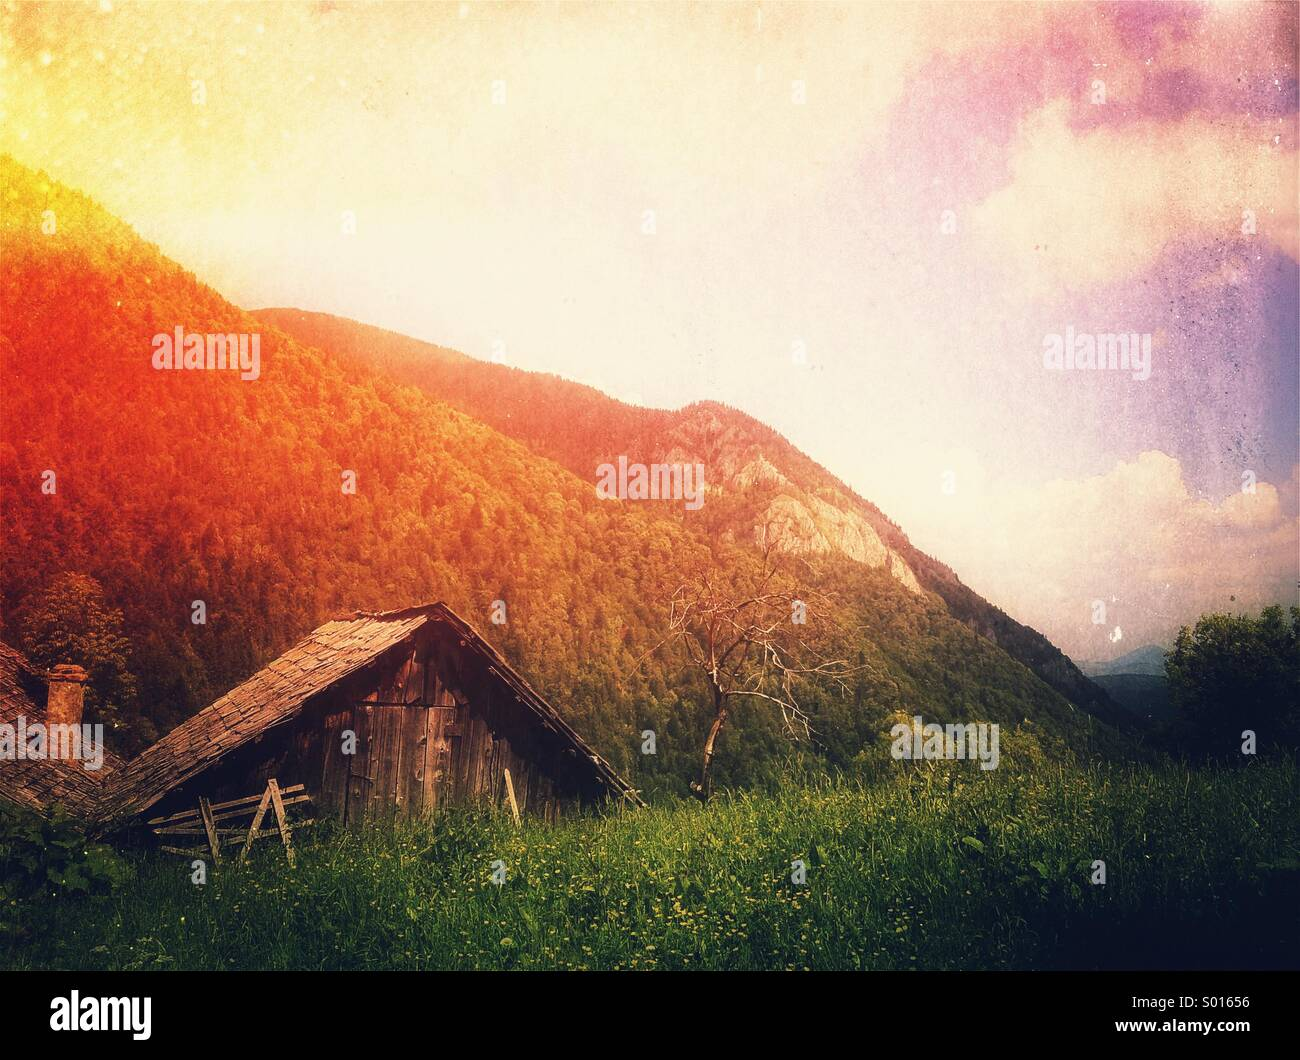 Old barn in mountains - Stock Image